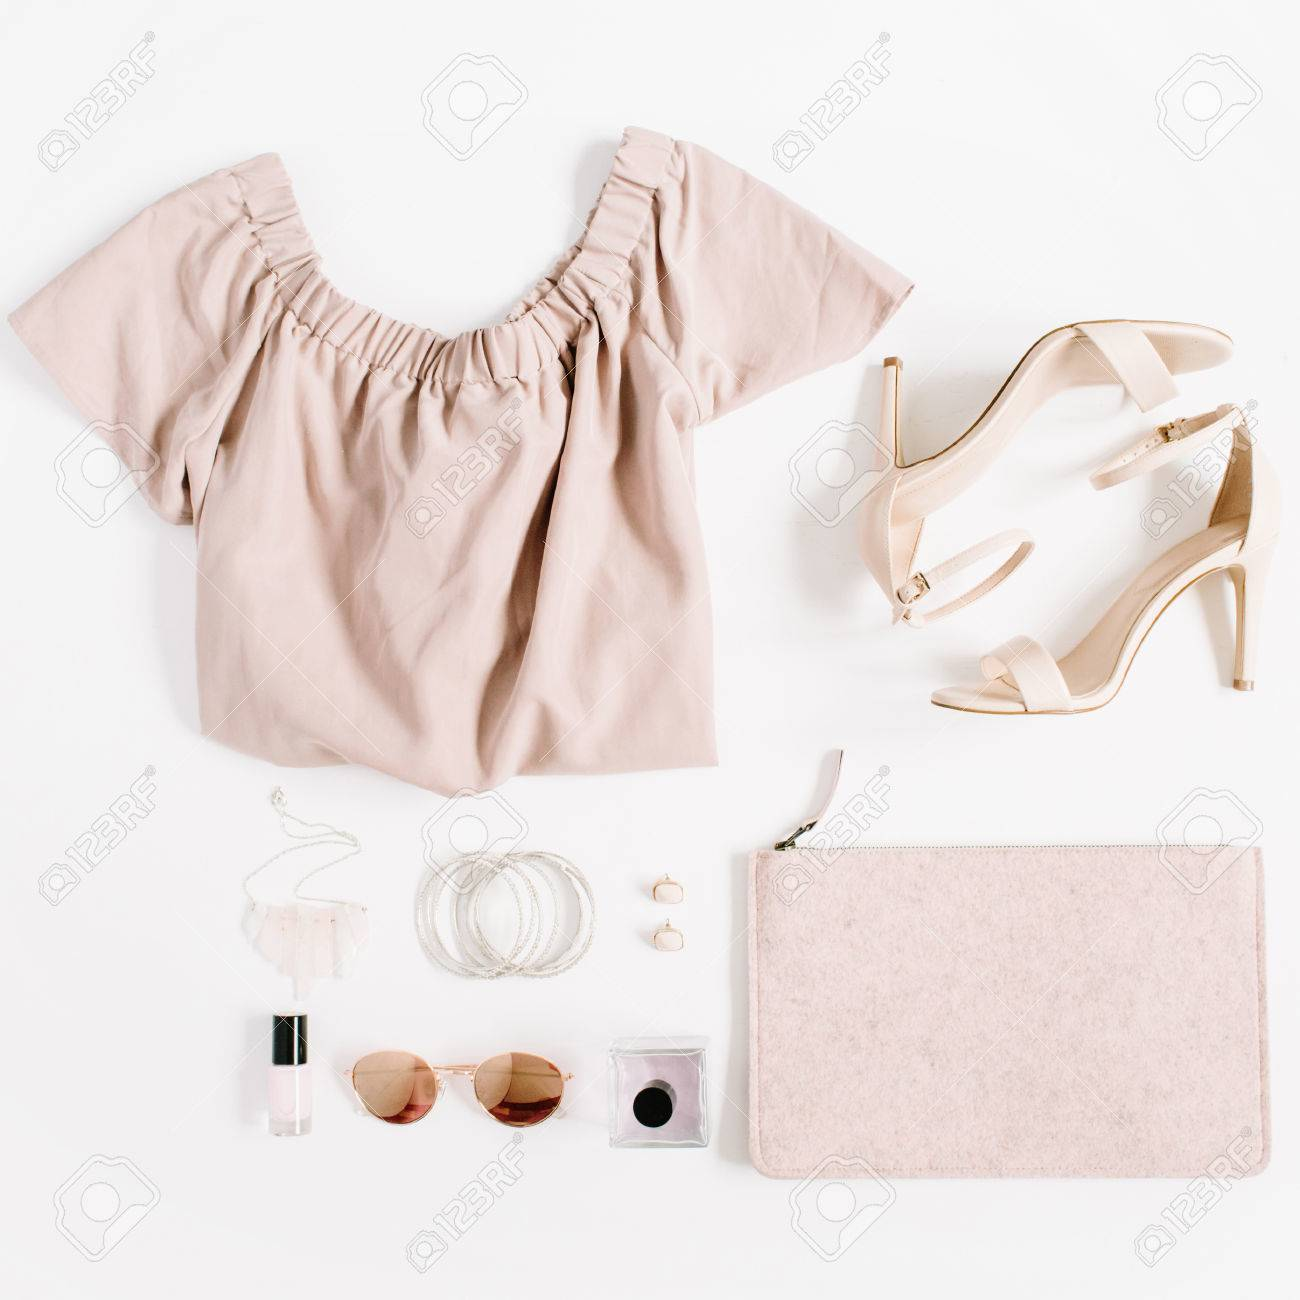 67a0c0992e47 Stock Photo - Woman fashion clothes and accessories collage on white  background. Flat lay, top view feminine background.